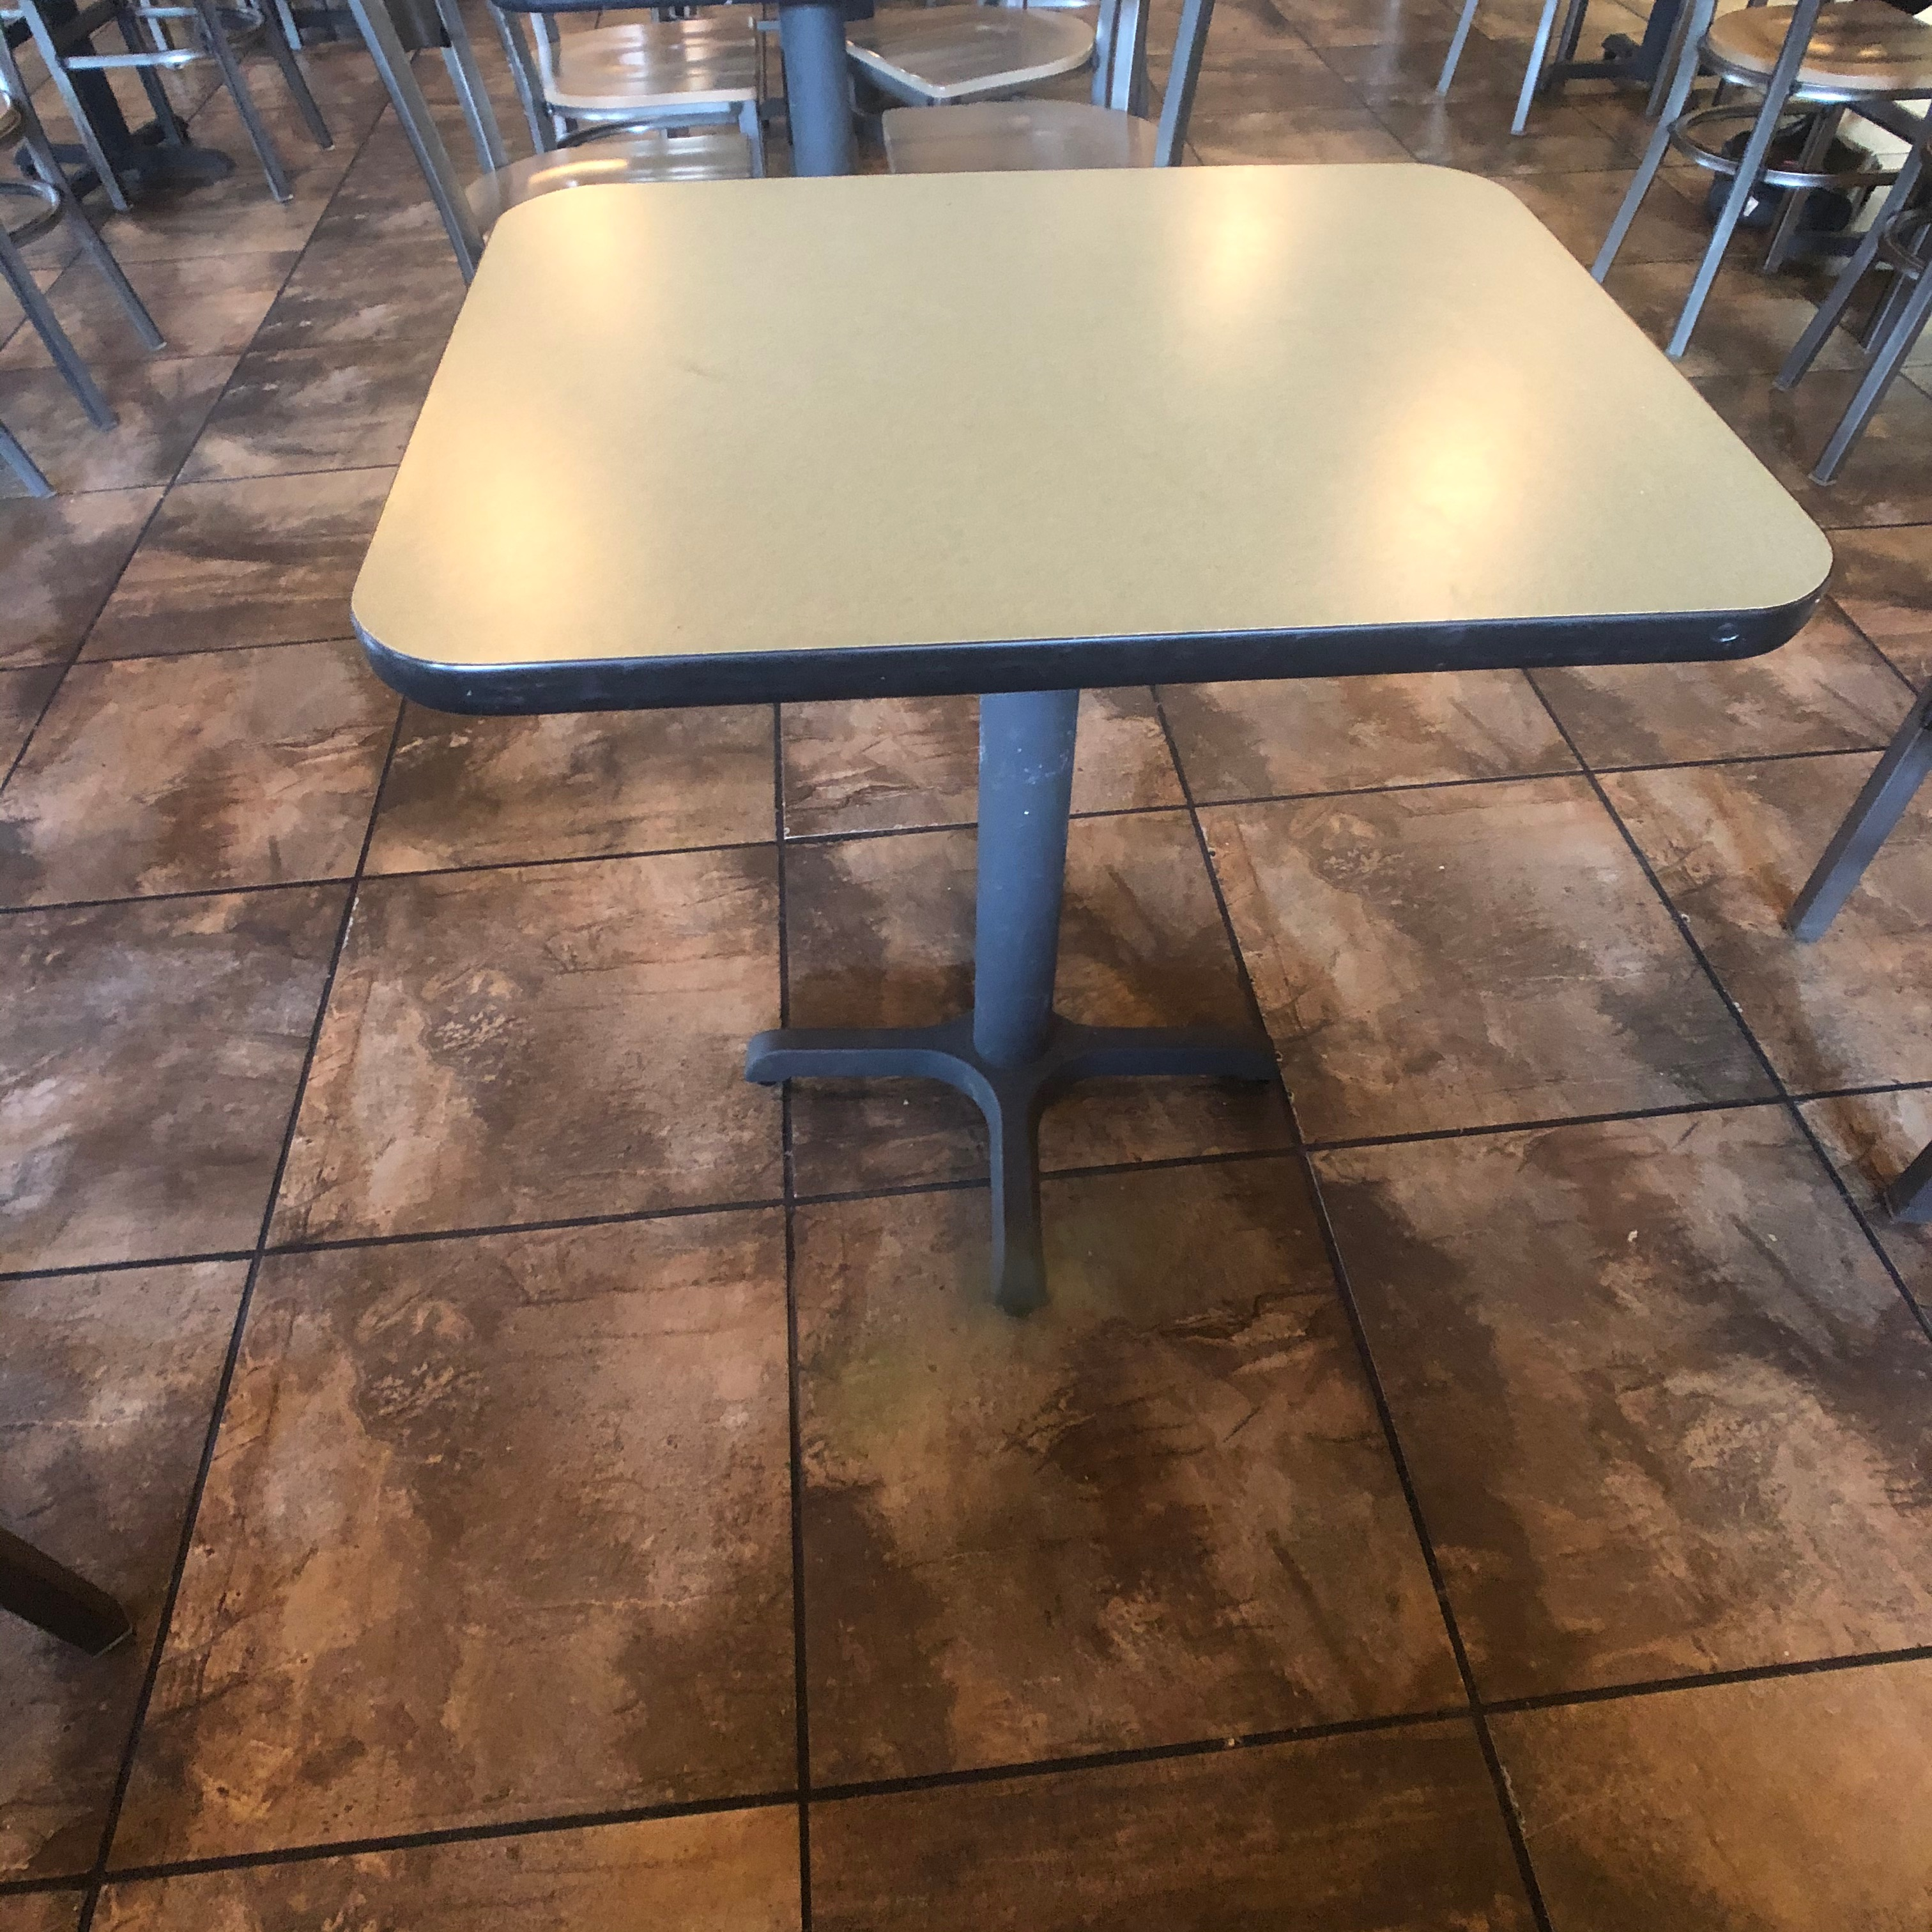 "(10) 2-Person Tables with (20) Walsh Simmons Seating Chairs, Approx. 2'6"" L x 24"" W - Image 3 of 5"